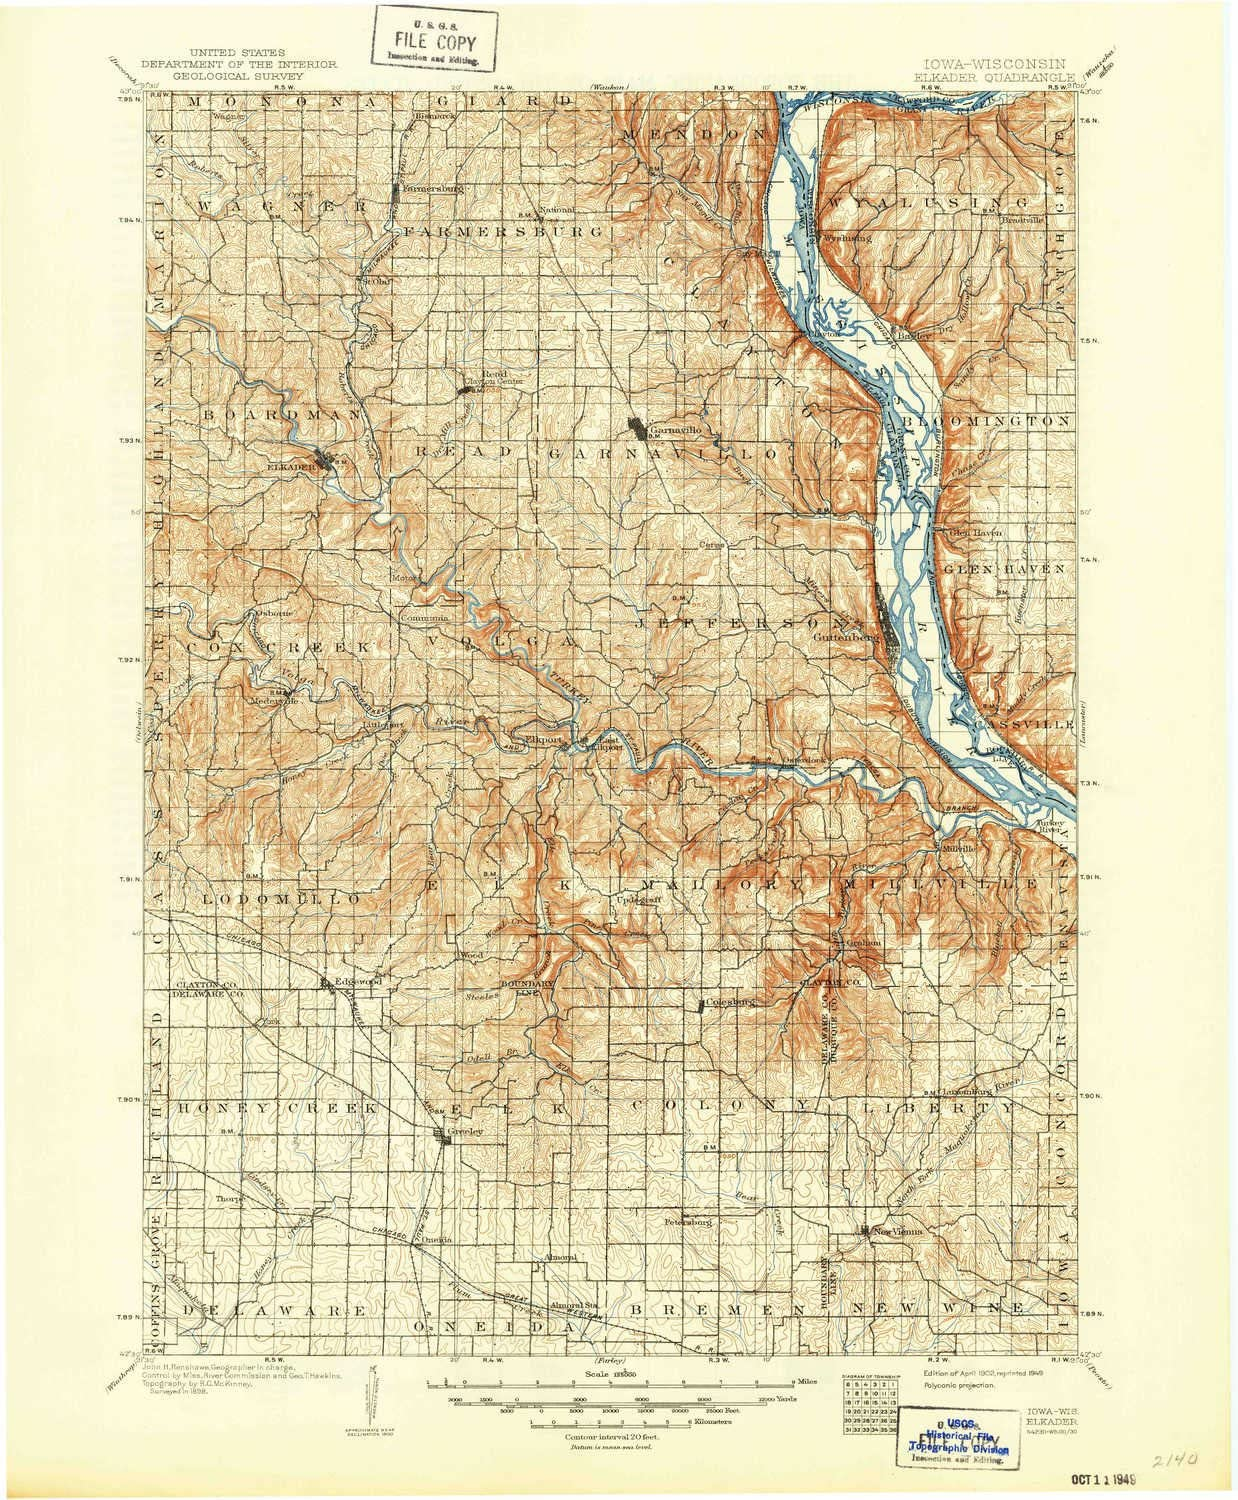 YellowMaps Elkader IA topo map Ranking Some reservation TOP17 Scale X 1:125000 Minute 30